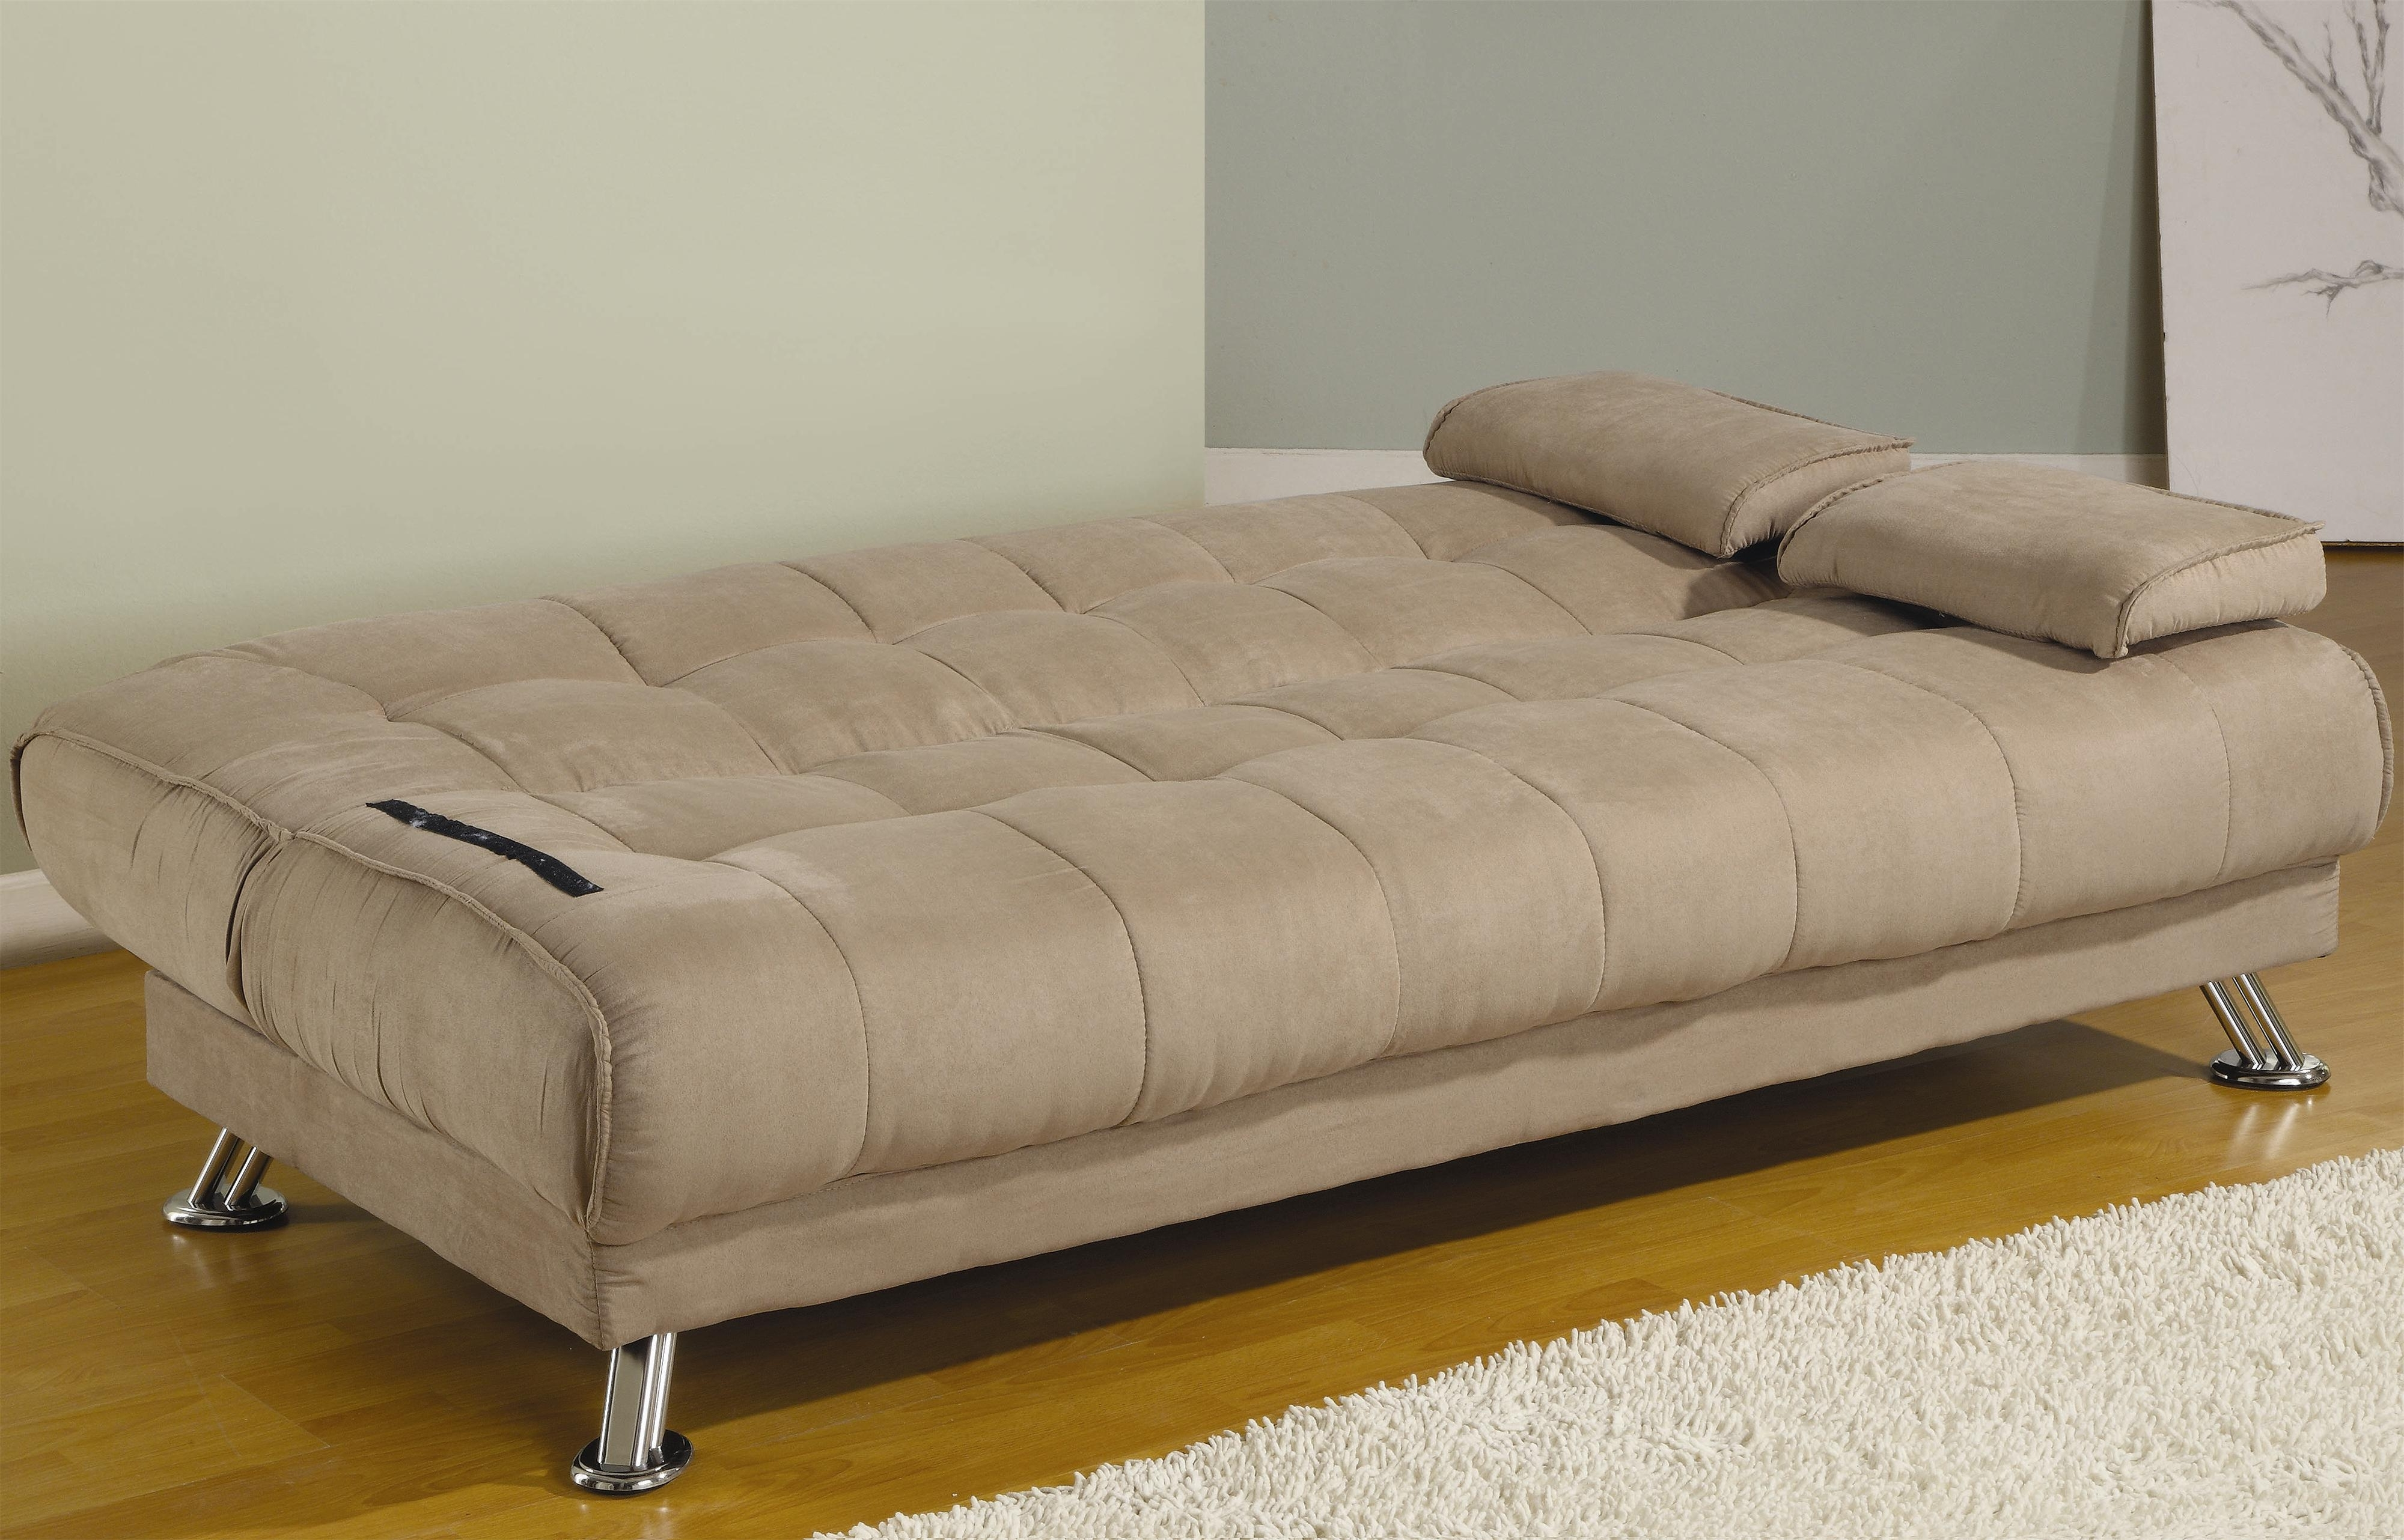 Big City Futon Intended For Well Known City Sofa Beds (View 5 of 15)